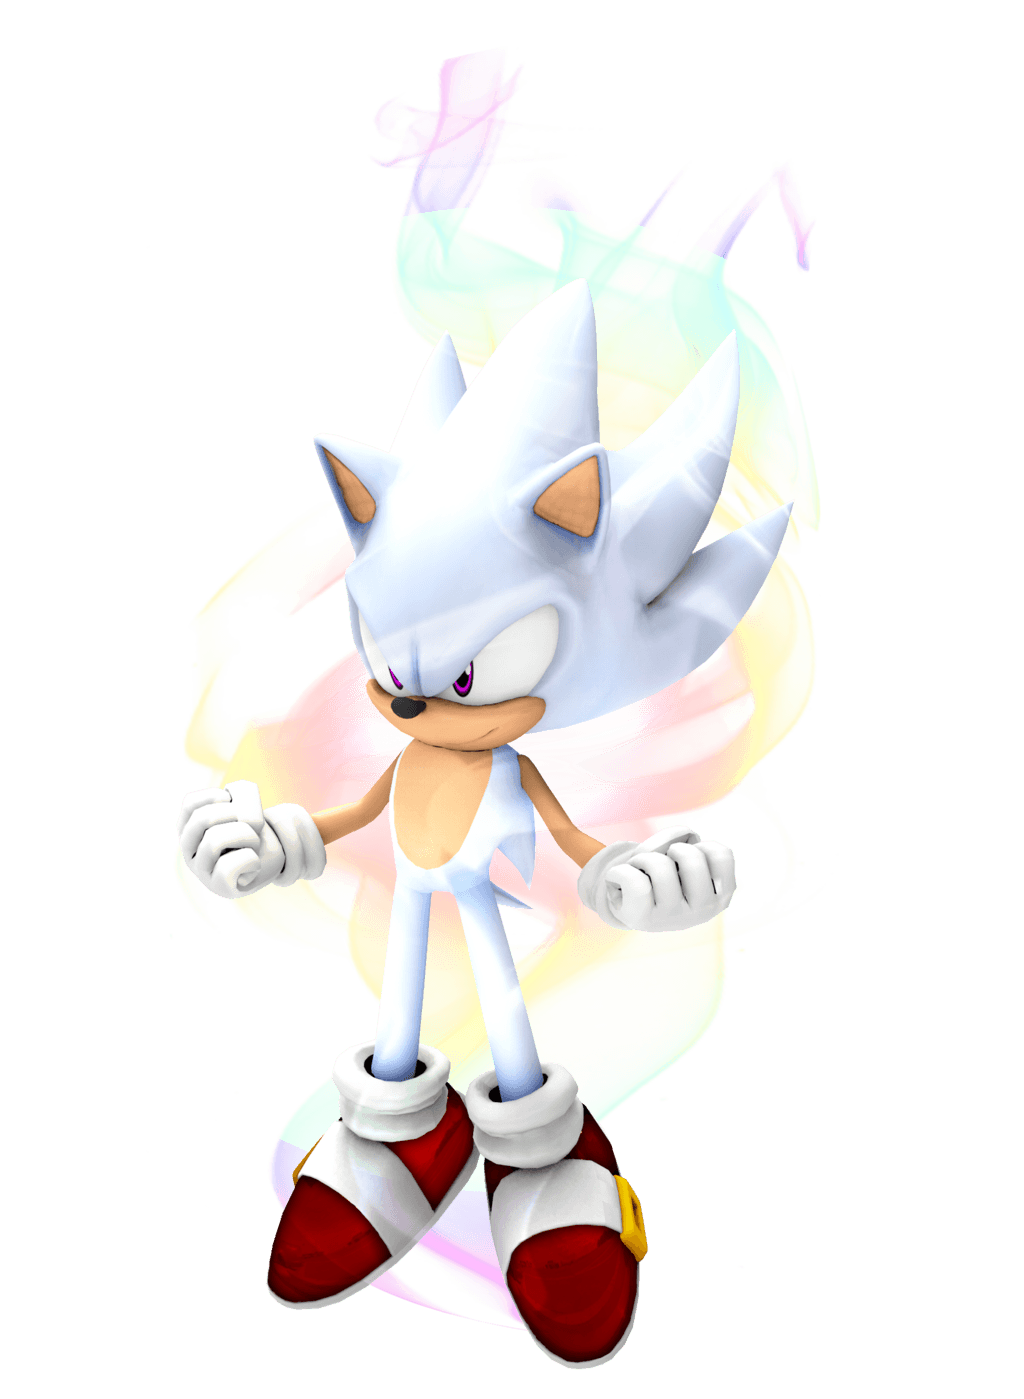 Hyper Sonic The Hedgehog Wallpapers Wallpaper Cave